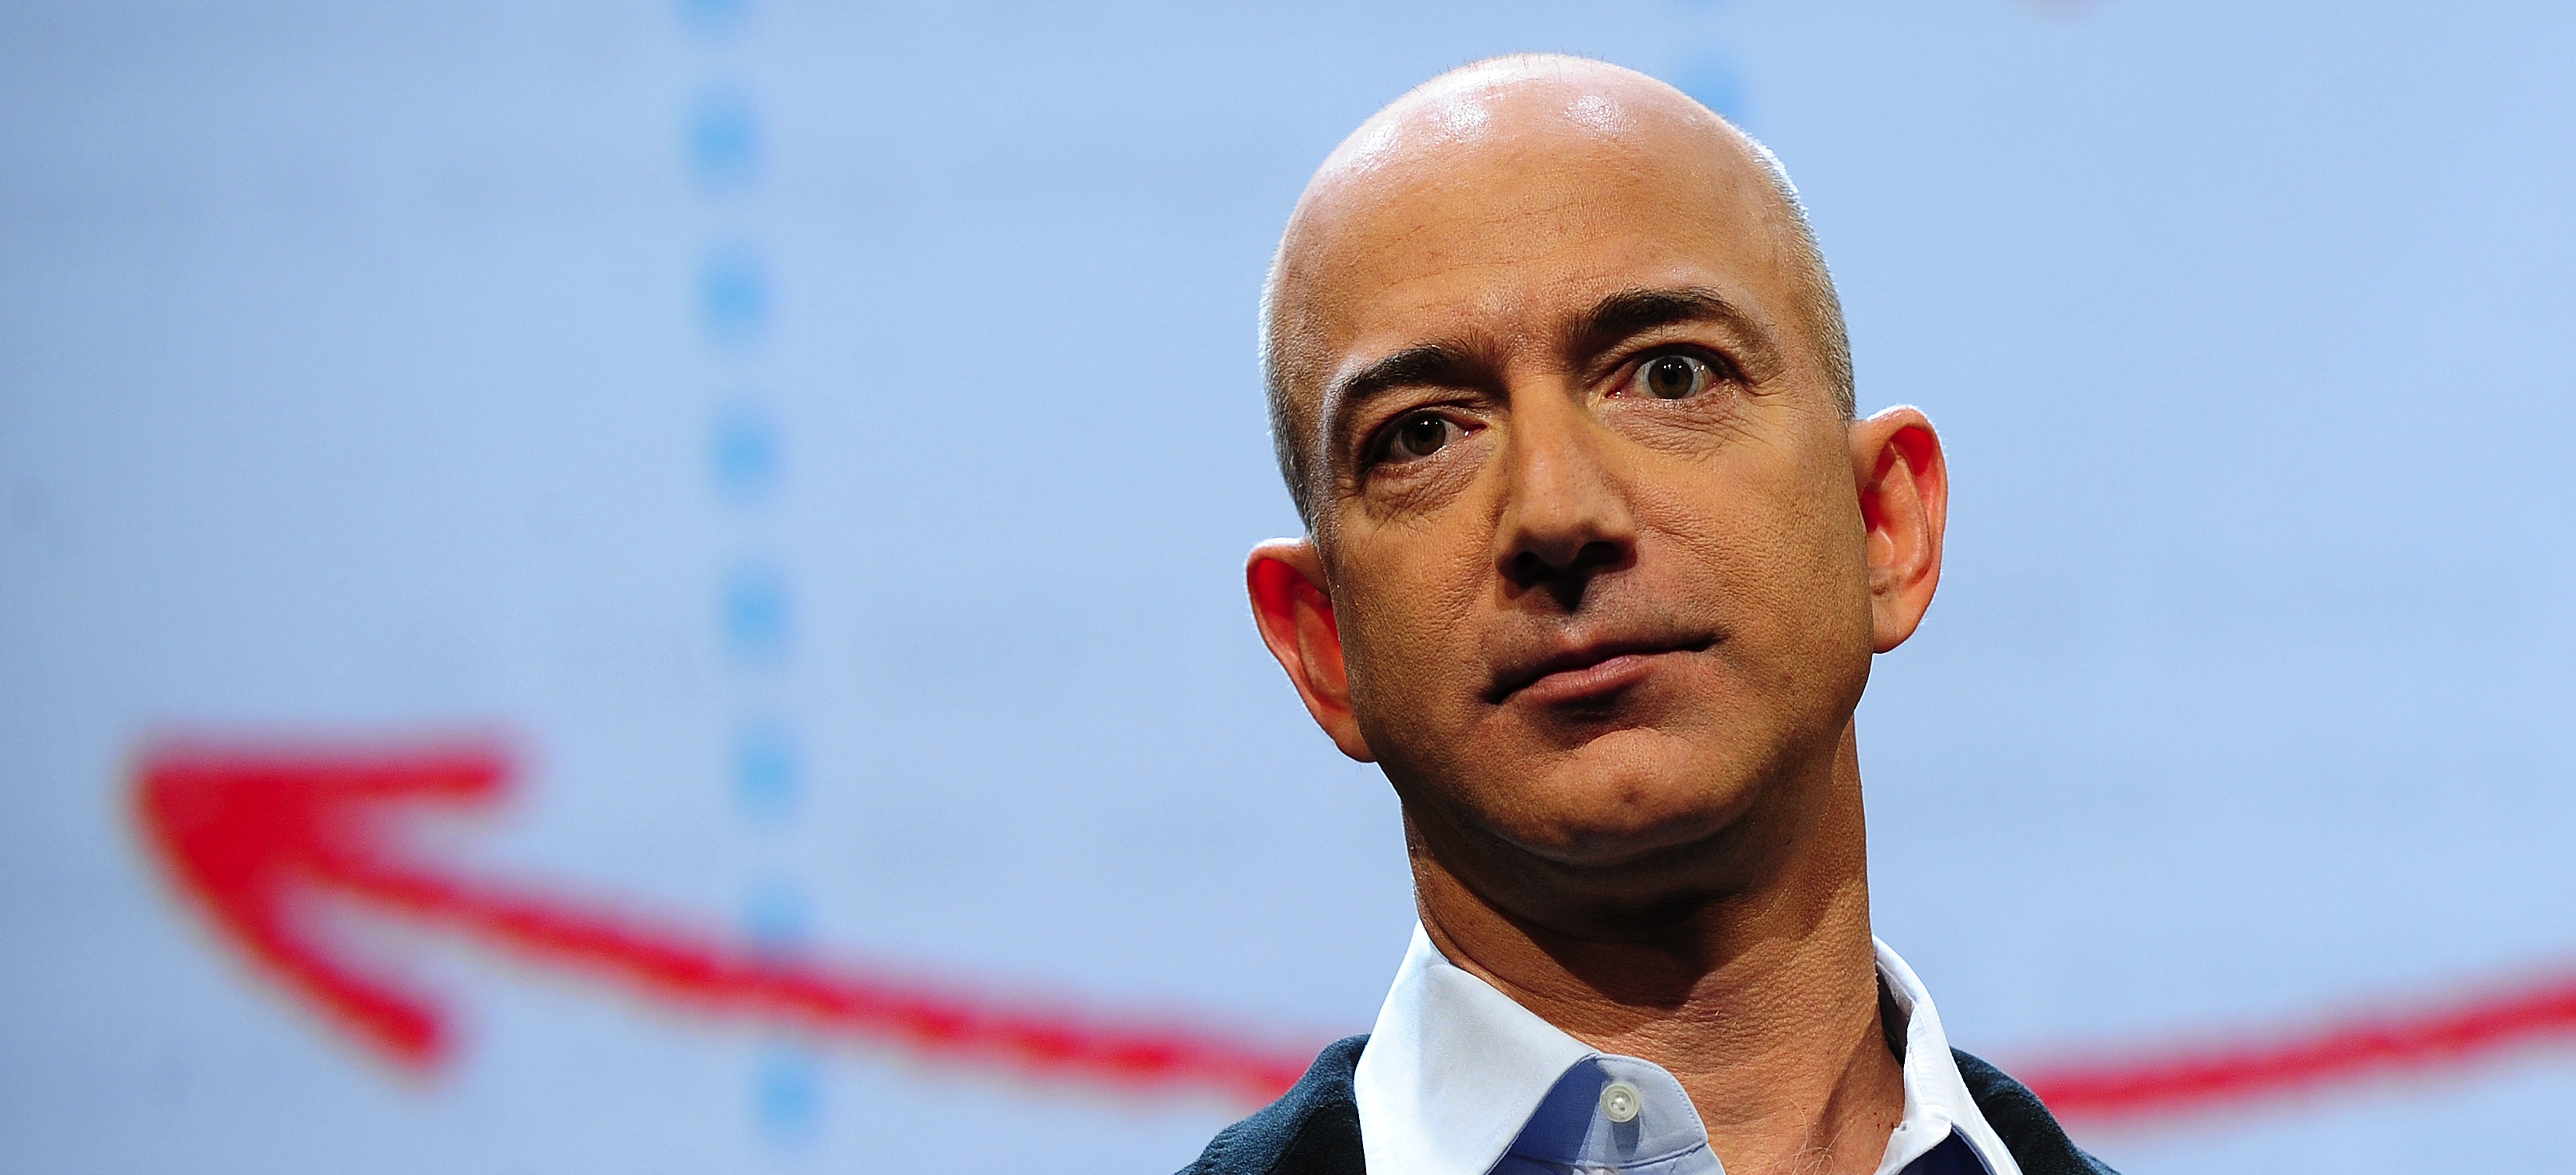 Amazon employee attempts suicide after leaving email to CEO Jeff Bezos